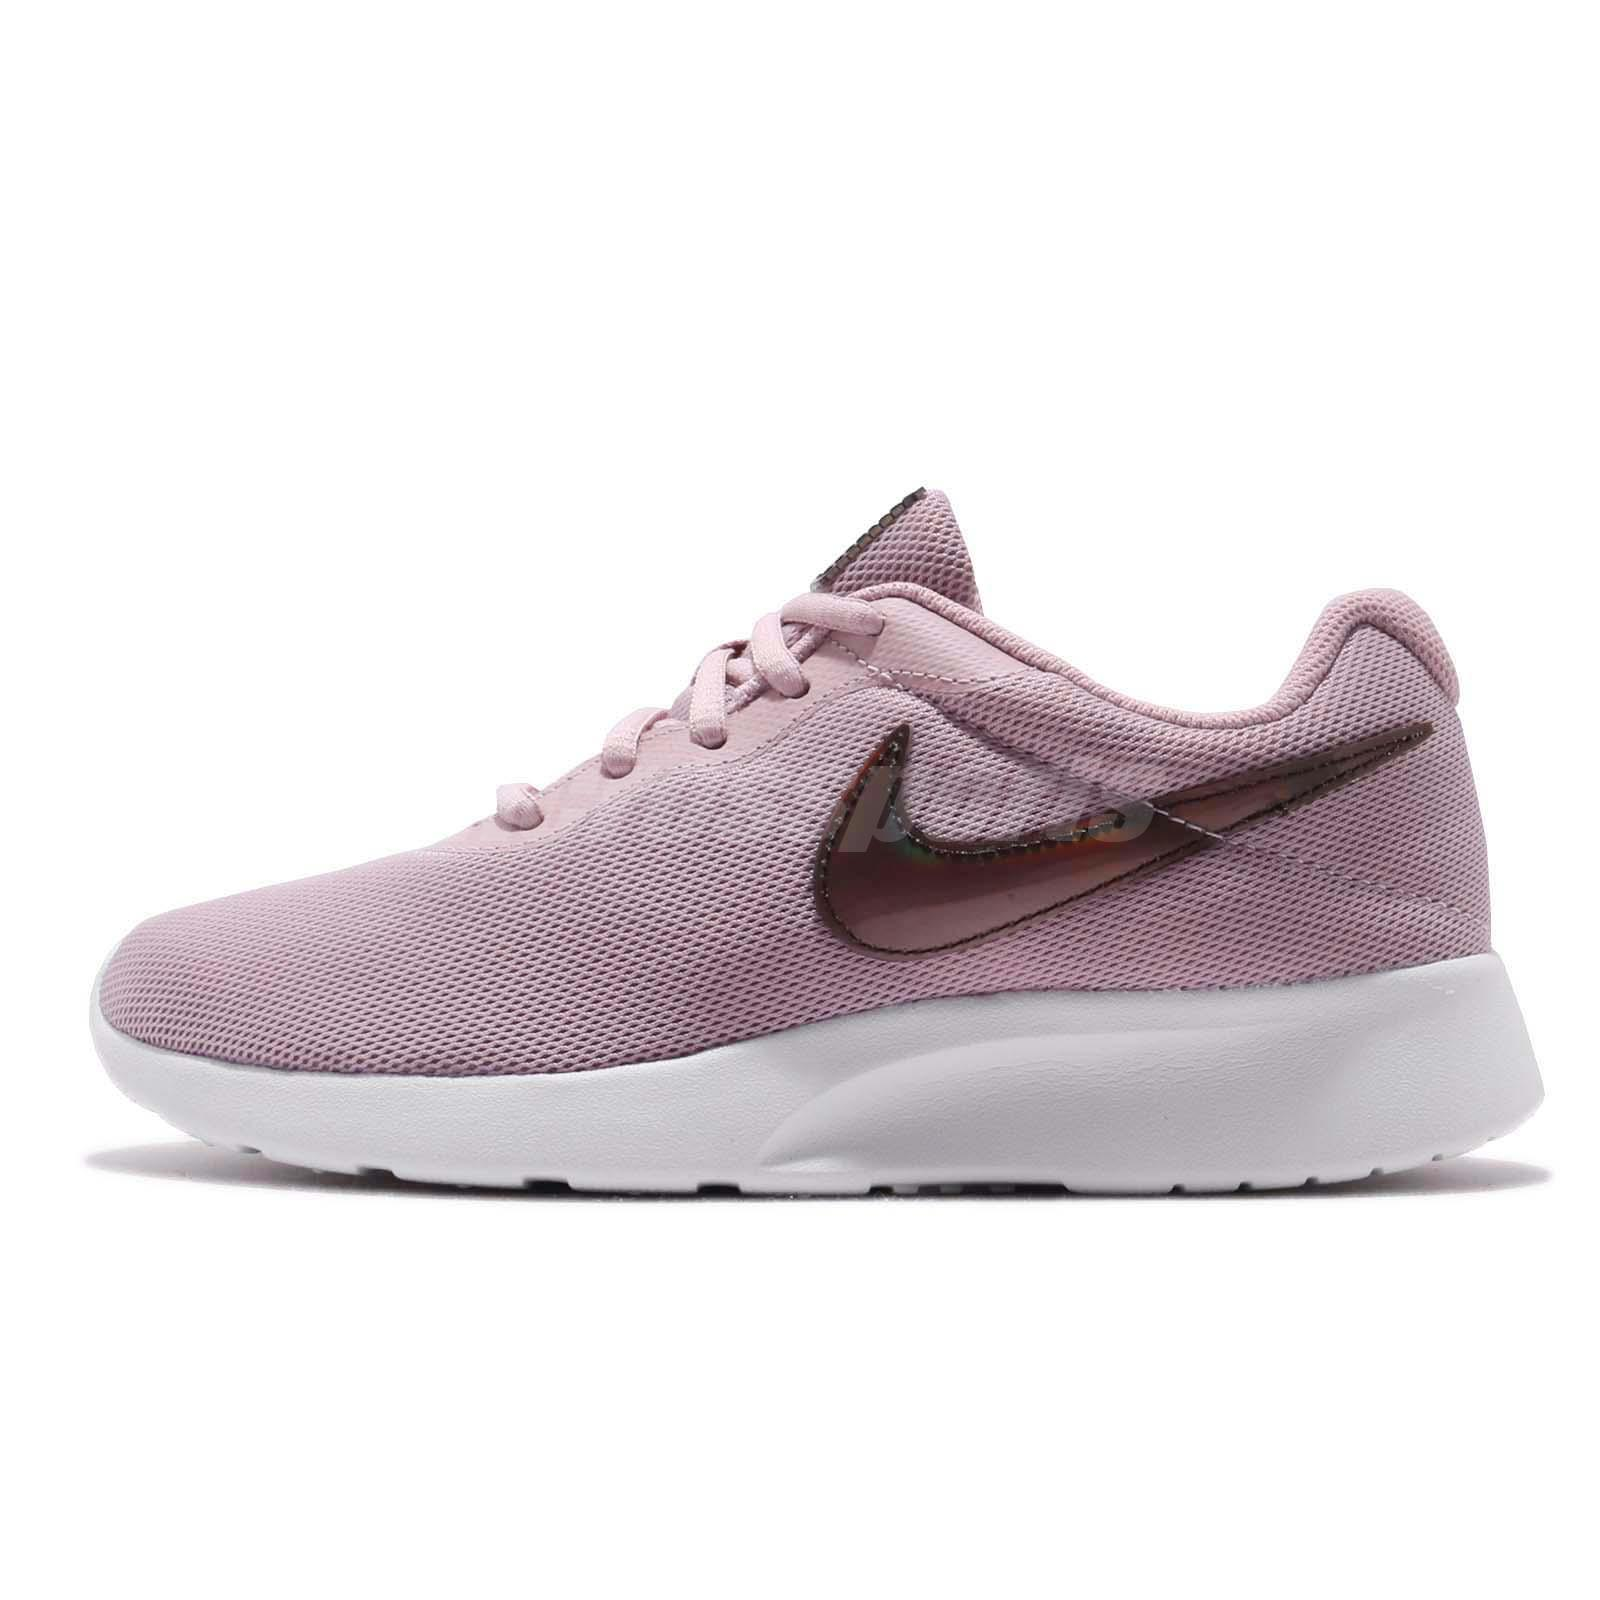 dd2bddc2e5dcd8 Nike Wmns Tanjun Plum Chalk White Women Running Casual Shoes Sneakers  812655-503